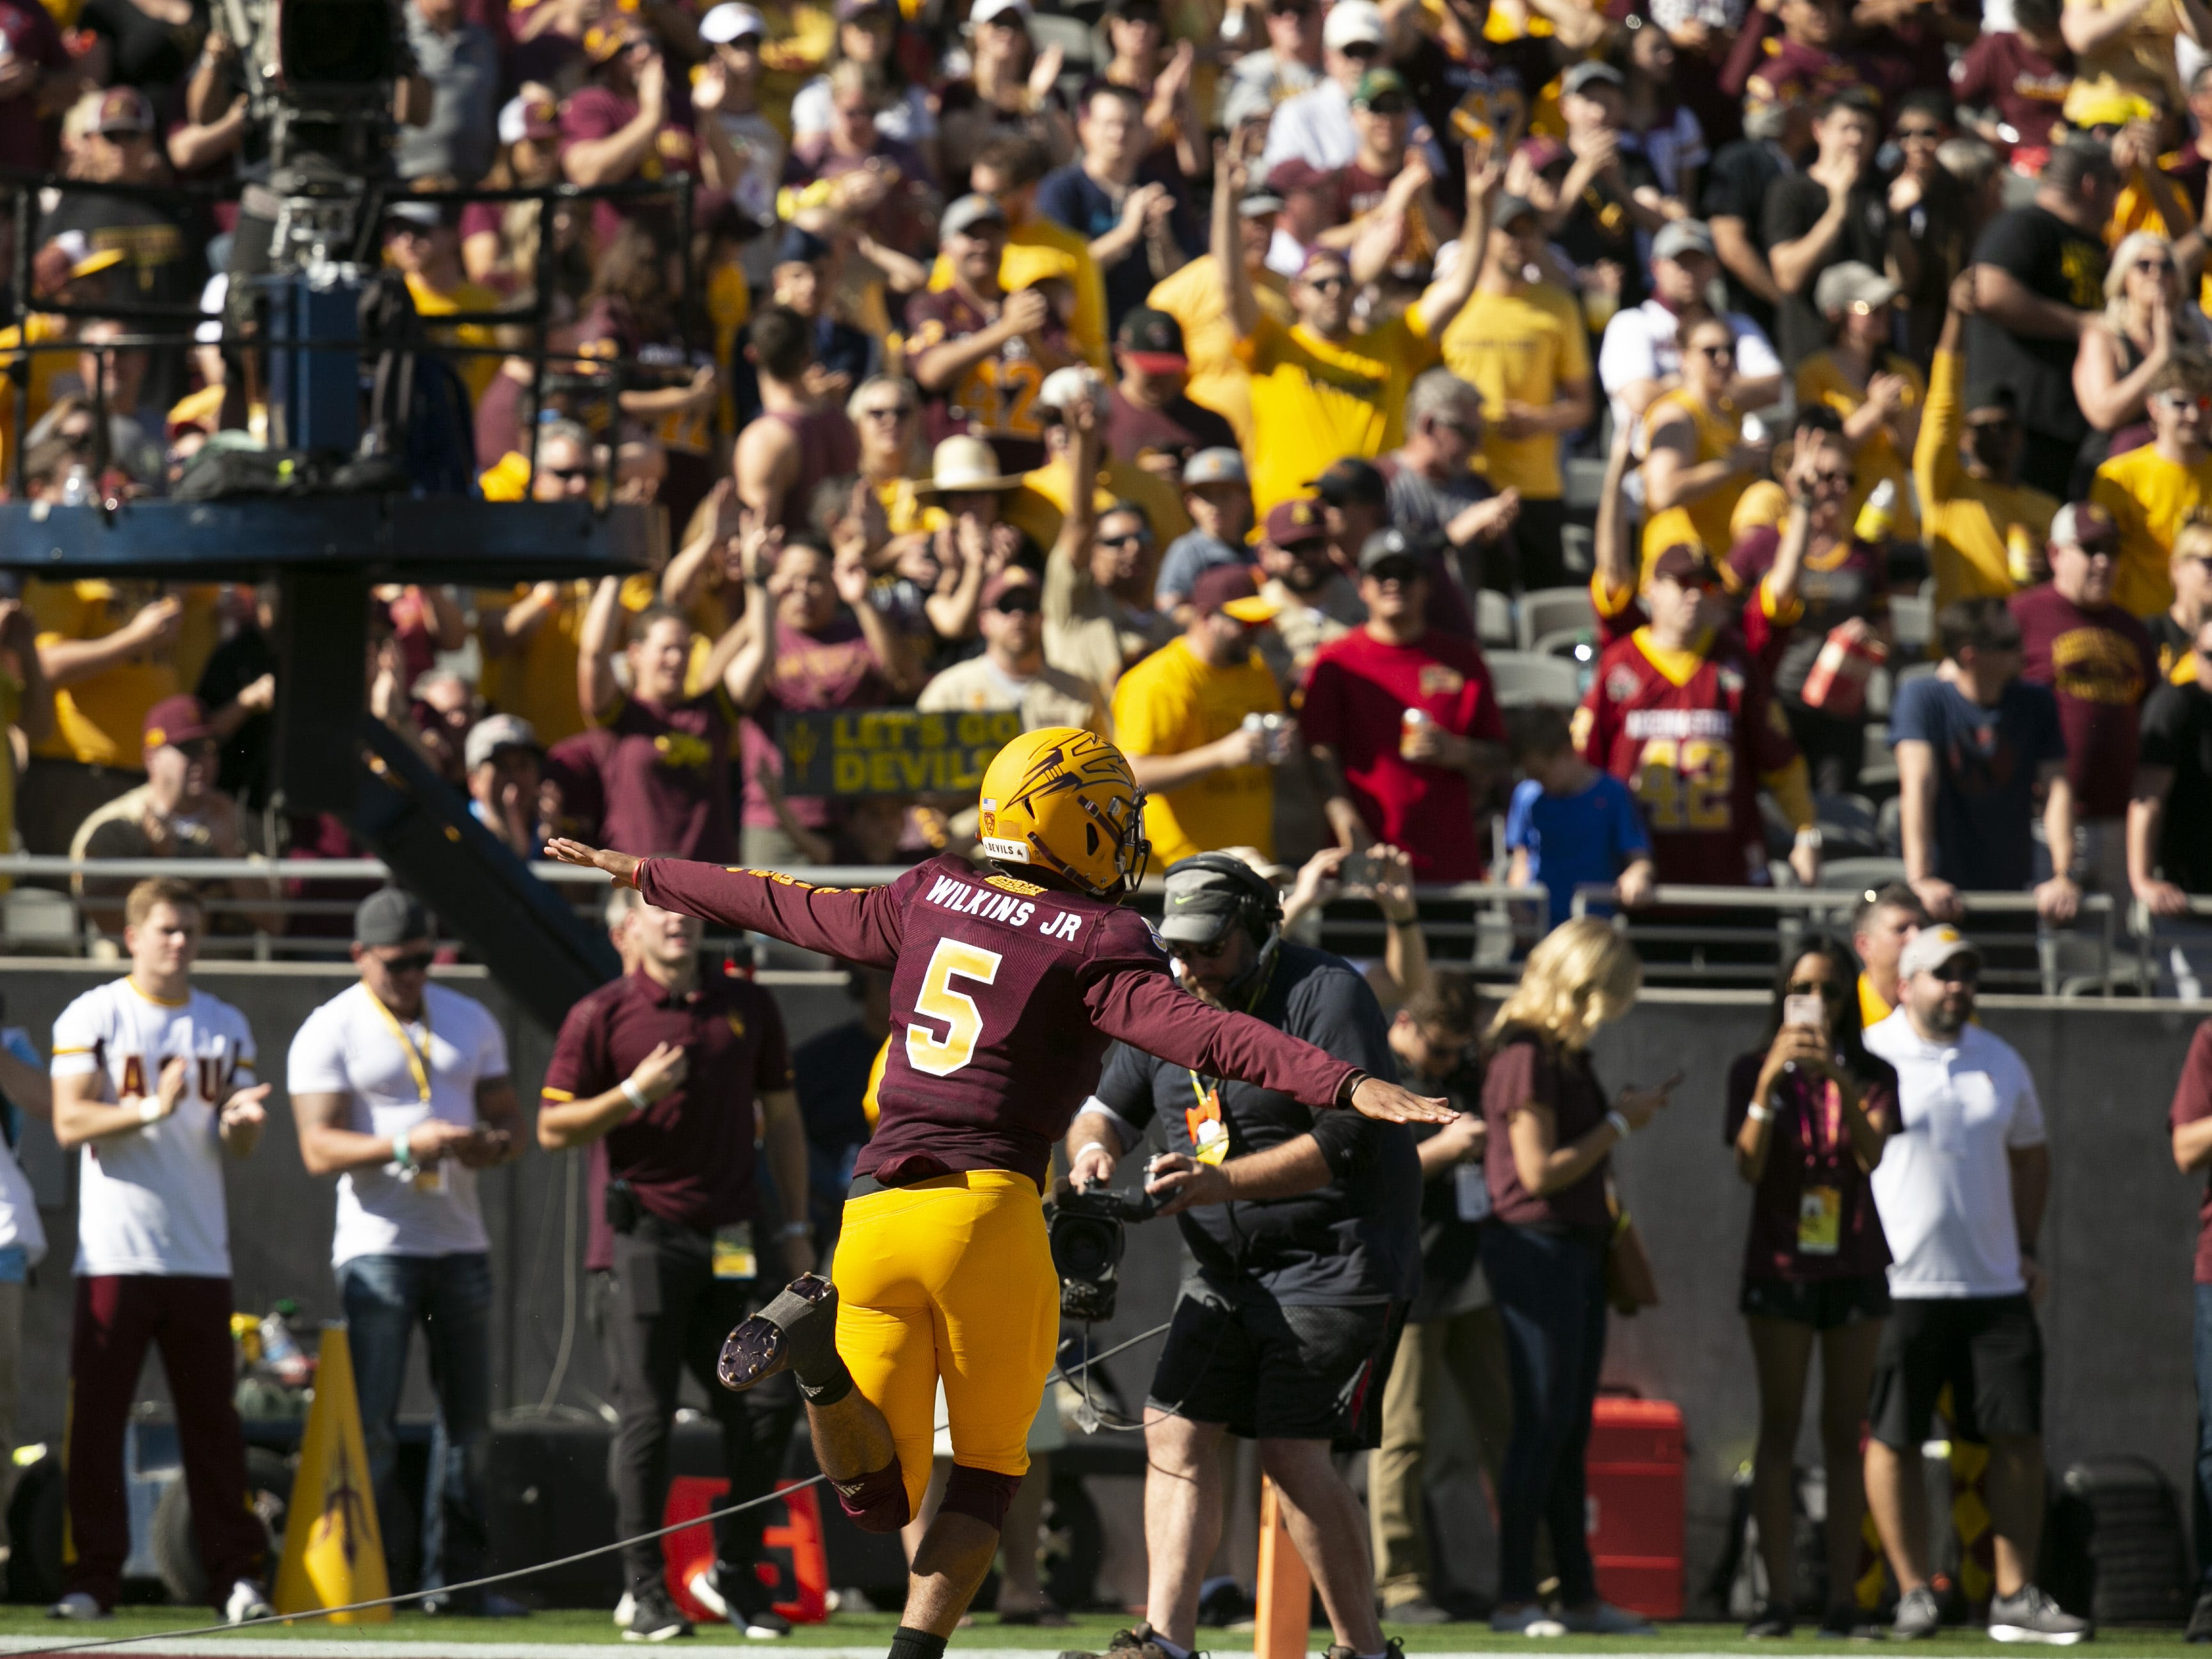 ASU quarterback Manny Wilkins after scoring touchdown during the second quarter of the PAC-12 college football game against UCLA at Sun Devil Stadium in Tempe on Saturday, November 10, 2018.